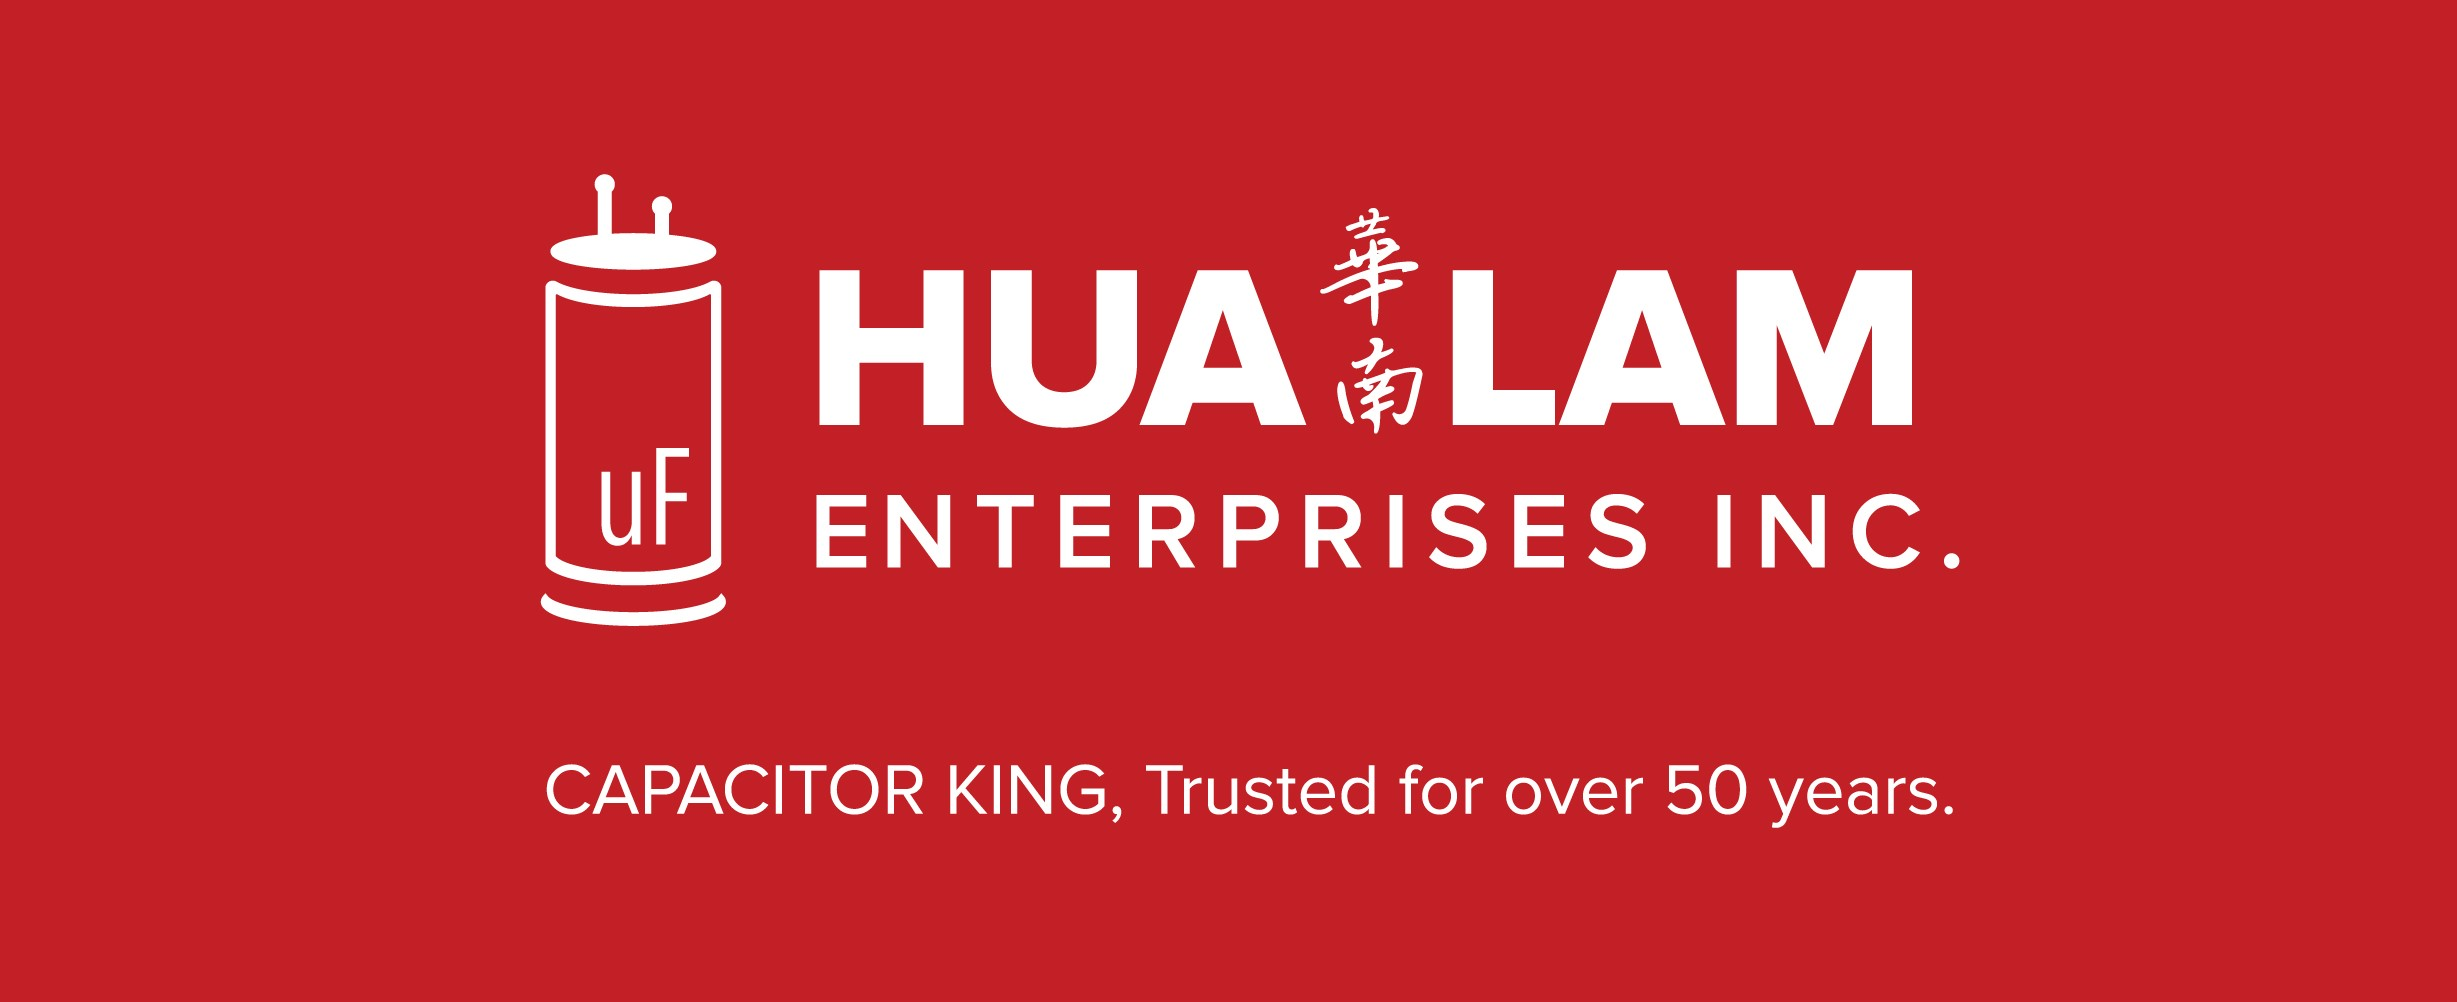 HUA LAM Enterprises Inc.